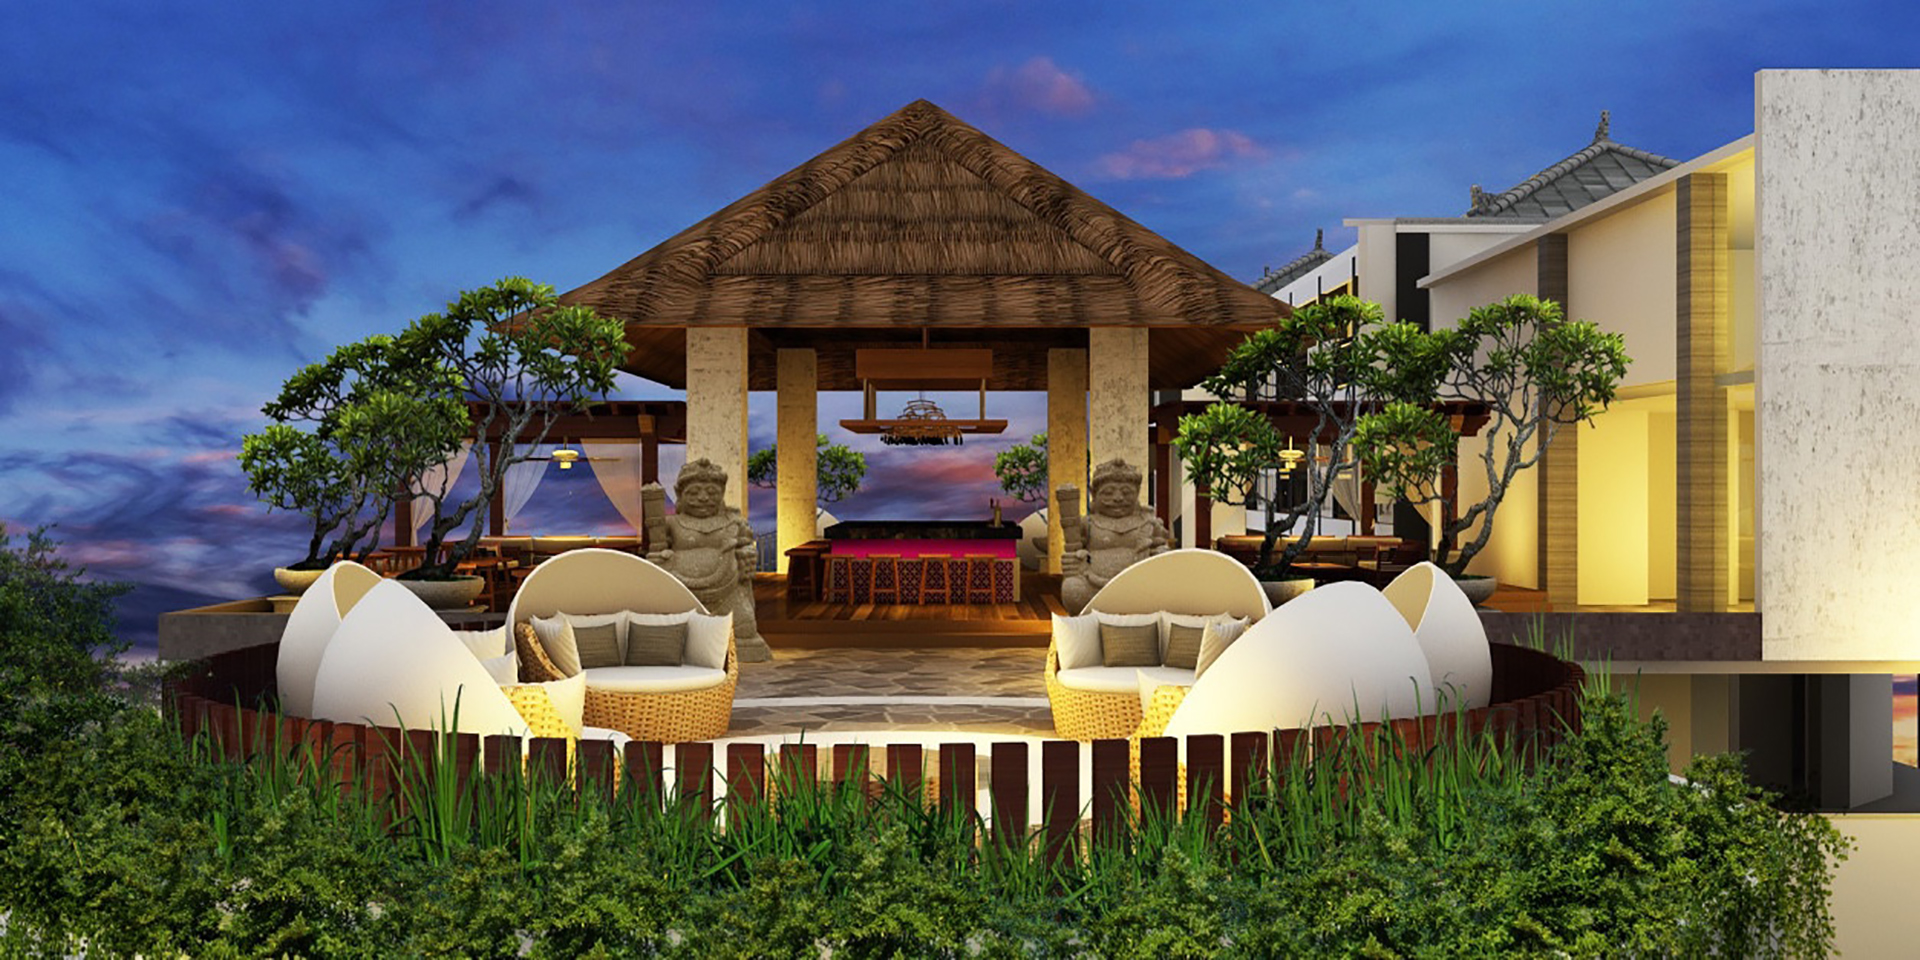 trp4570ex-201092-view-from-naga-rooftop-bar-and-lounge-front-rendering-content